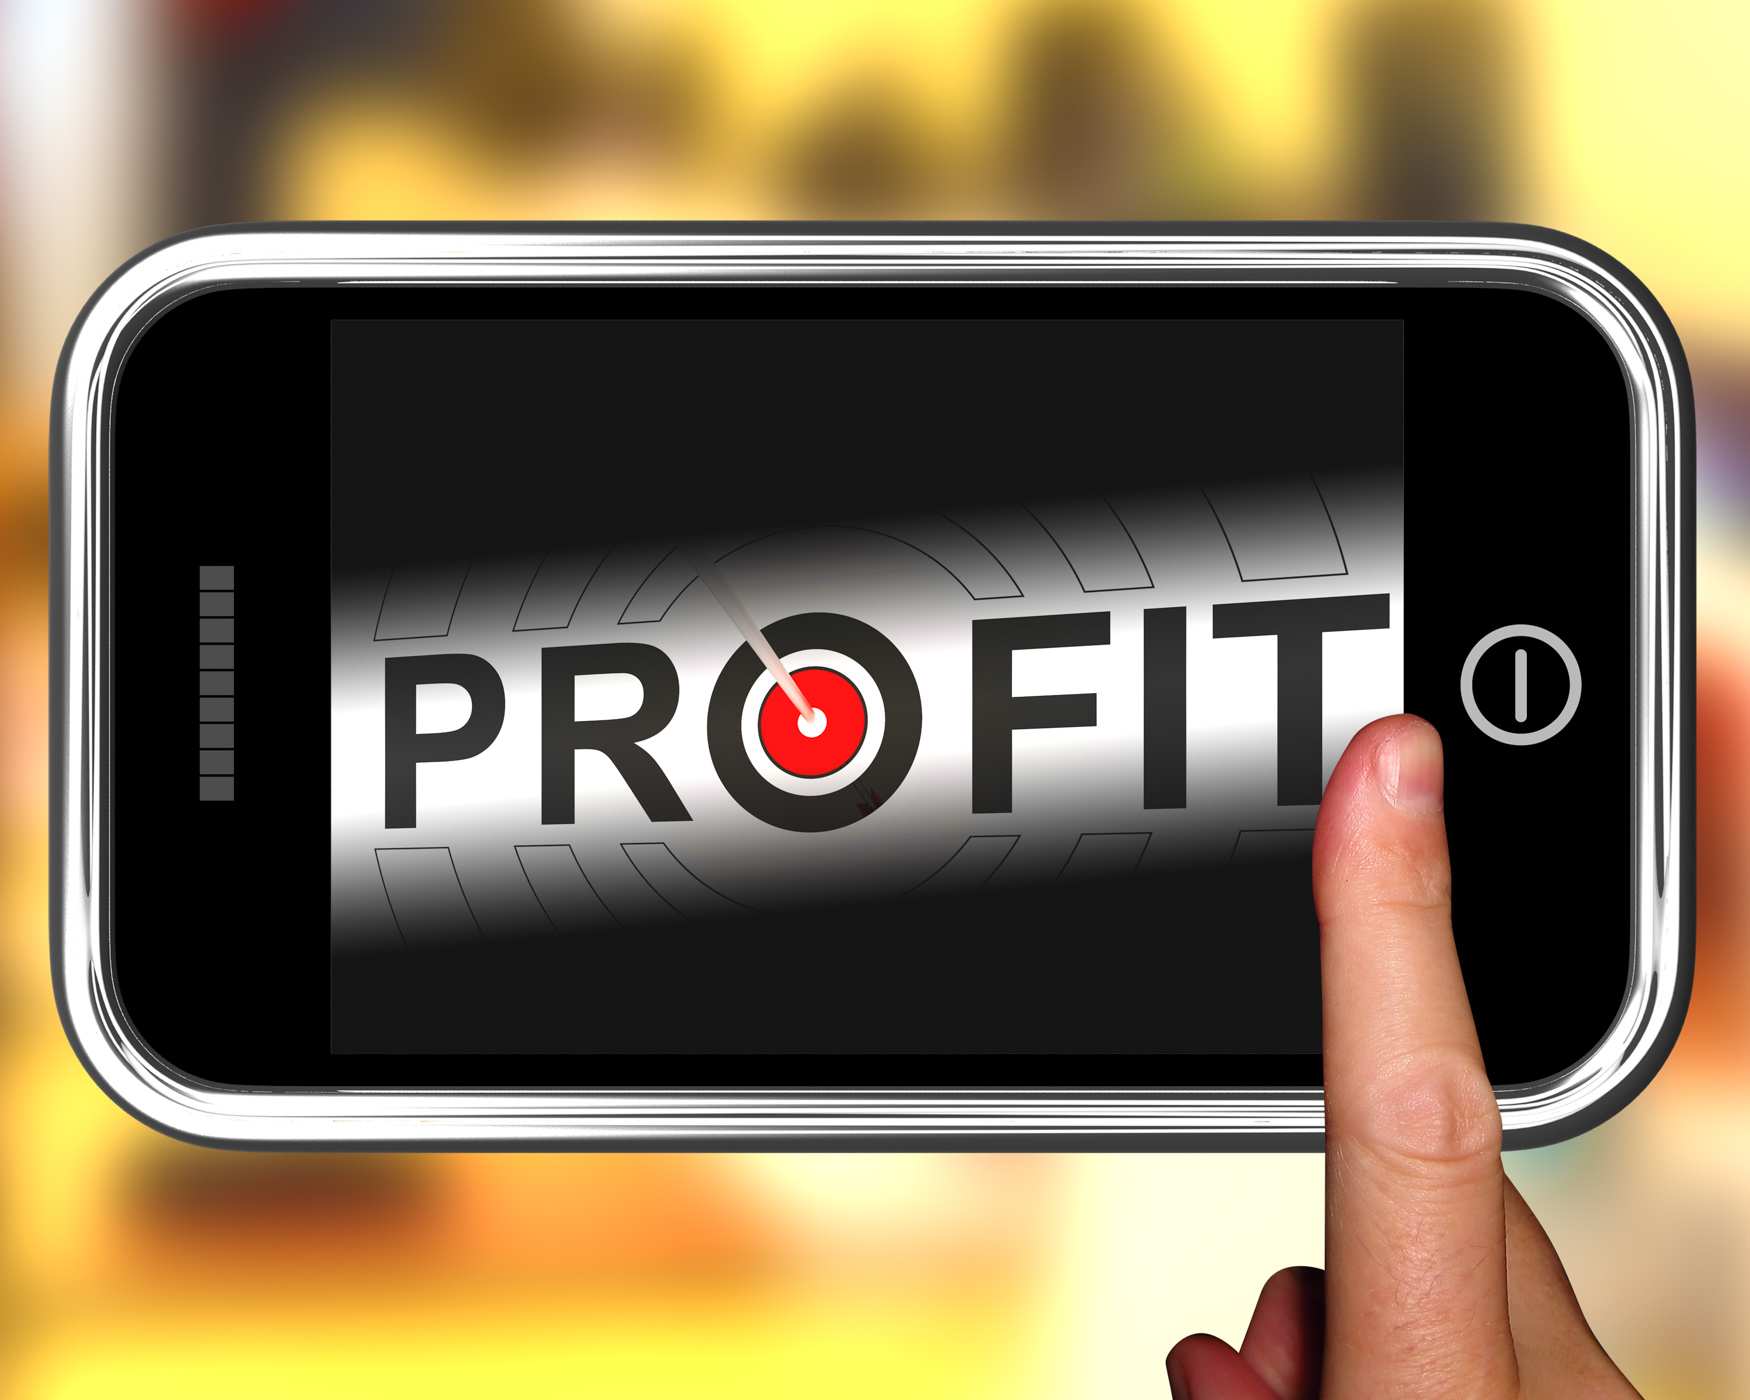 Profit on smartphone shows aimed progress photo